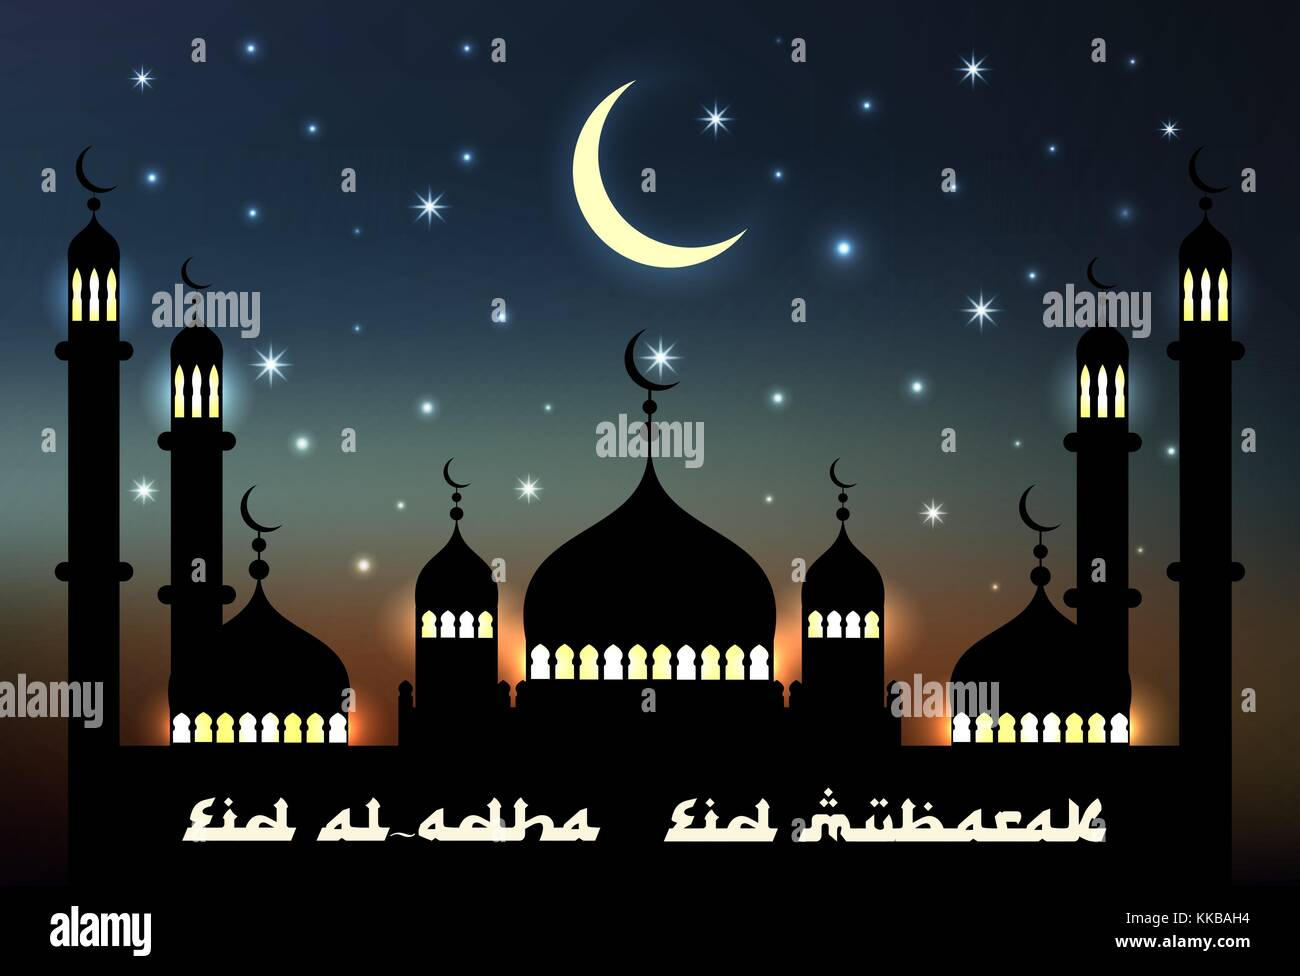 Vector islamic holiday illustration. Lettering composition of muslim holy month with mosque building, moon, sparkles - Stock Image